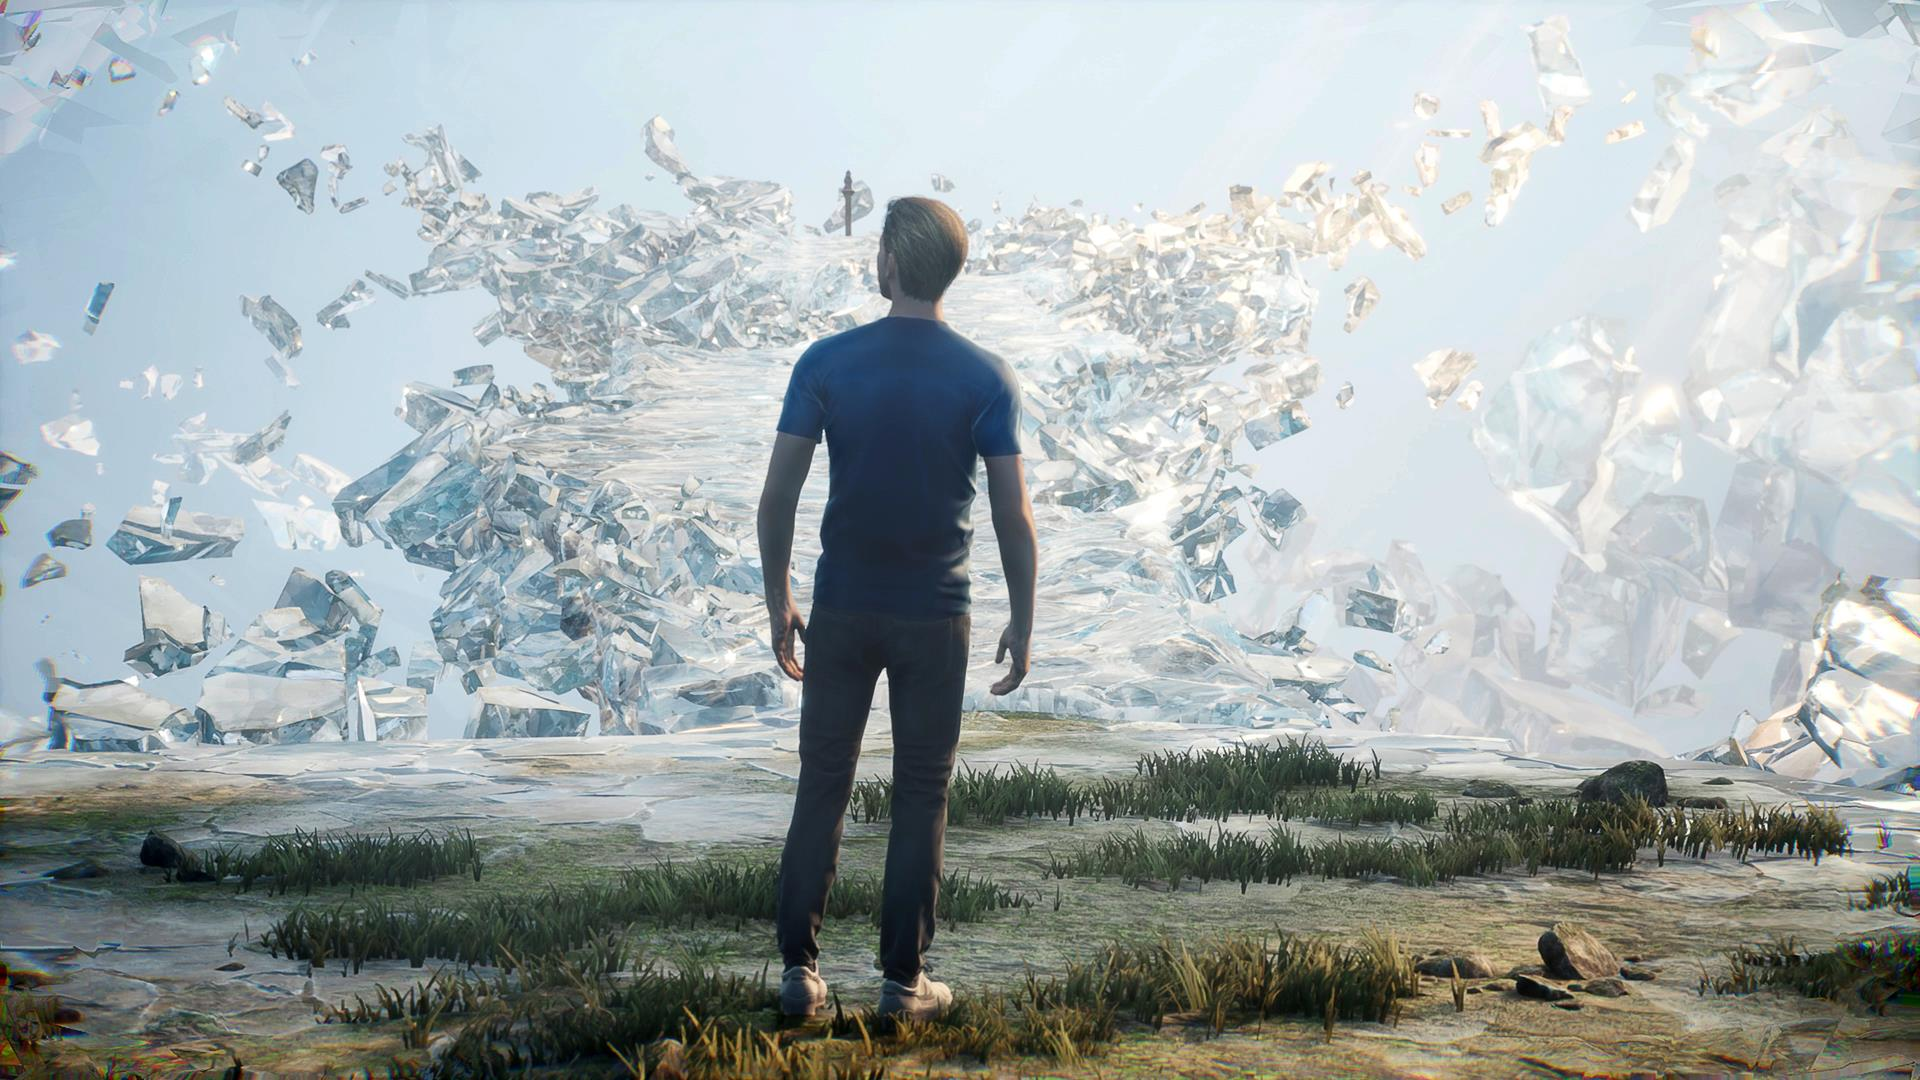 Dontnod's newest game, Twin Mirror, gets a release date for December